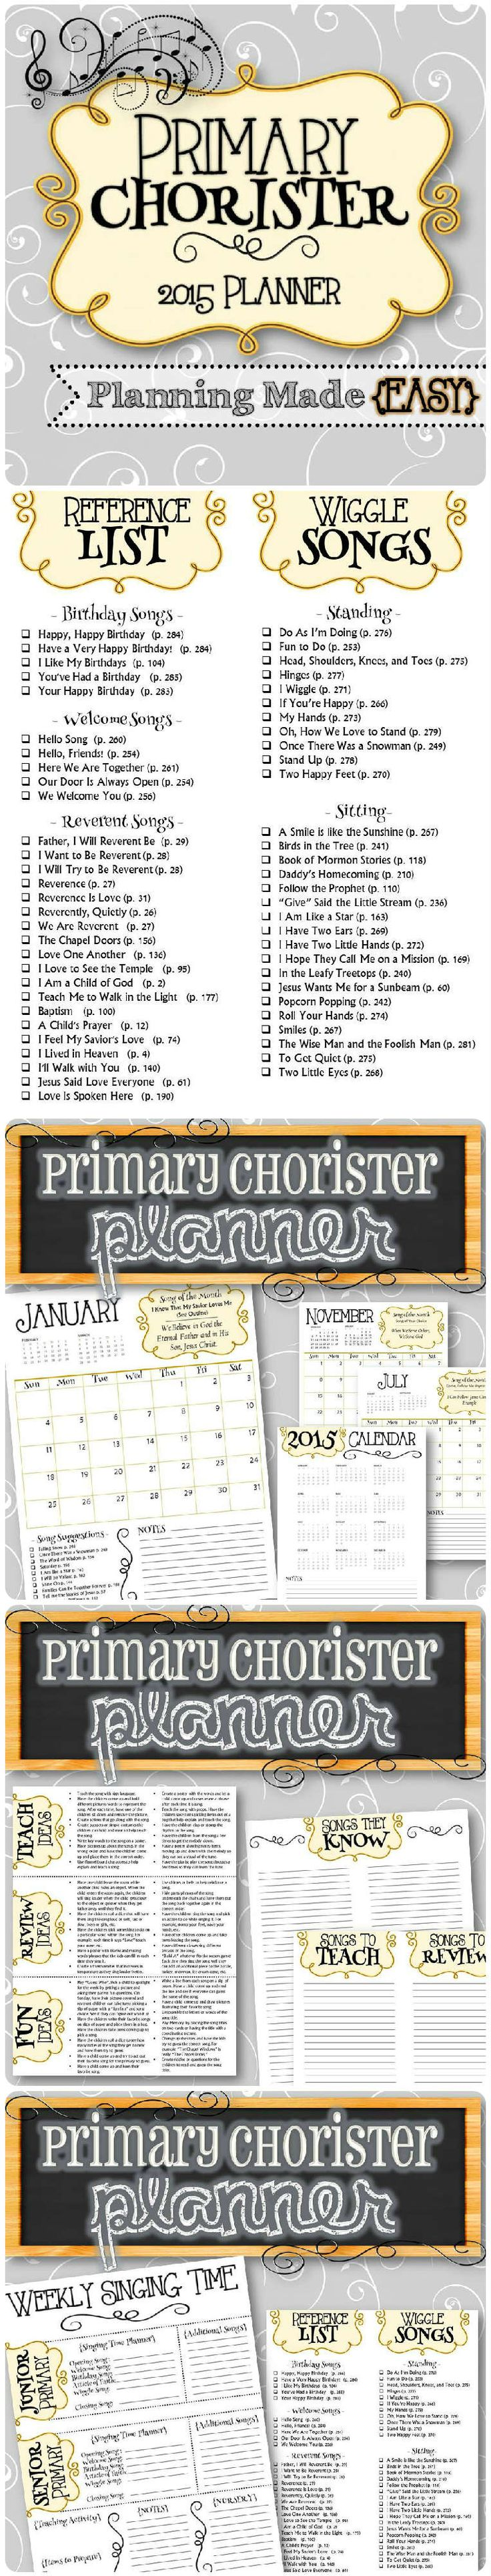 best images about singing a song is fun to do an all in one planner that tells you the monthly song and theme along song suggestions by month teaching ideas reference lists